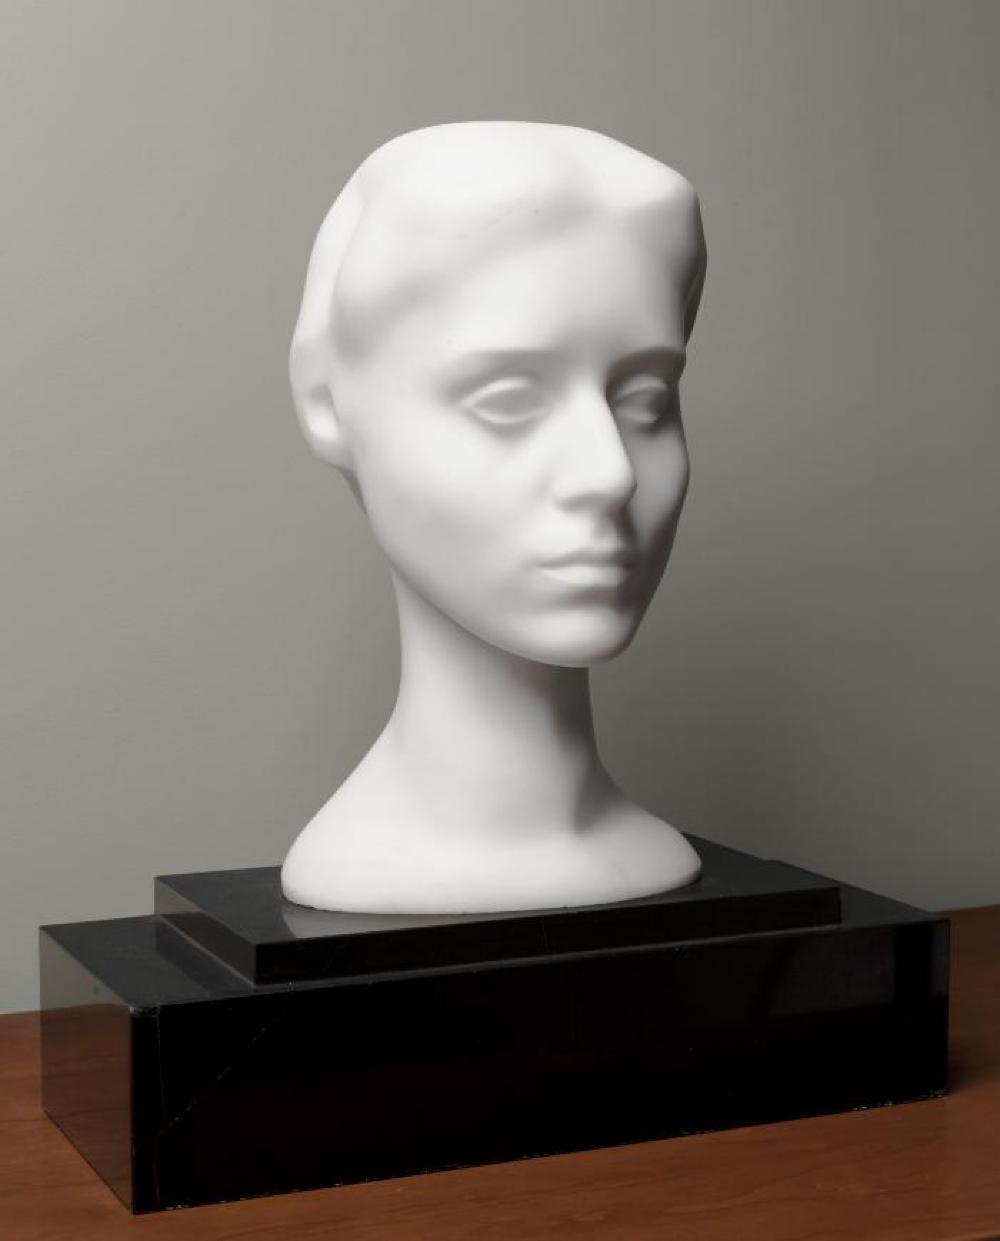 Clare Booth Luce, image 4